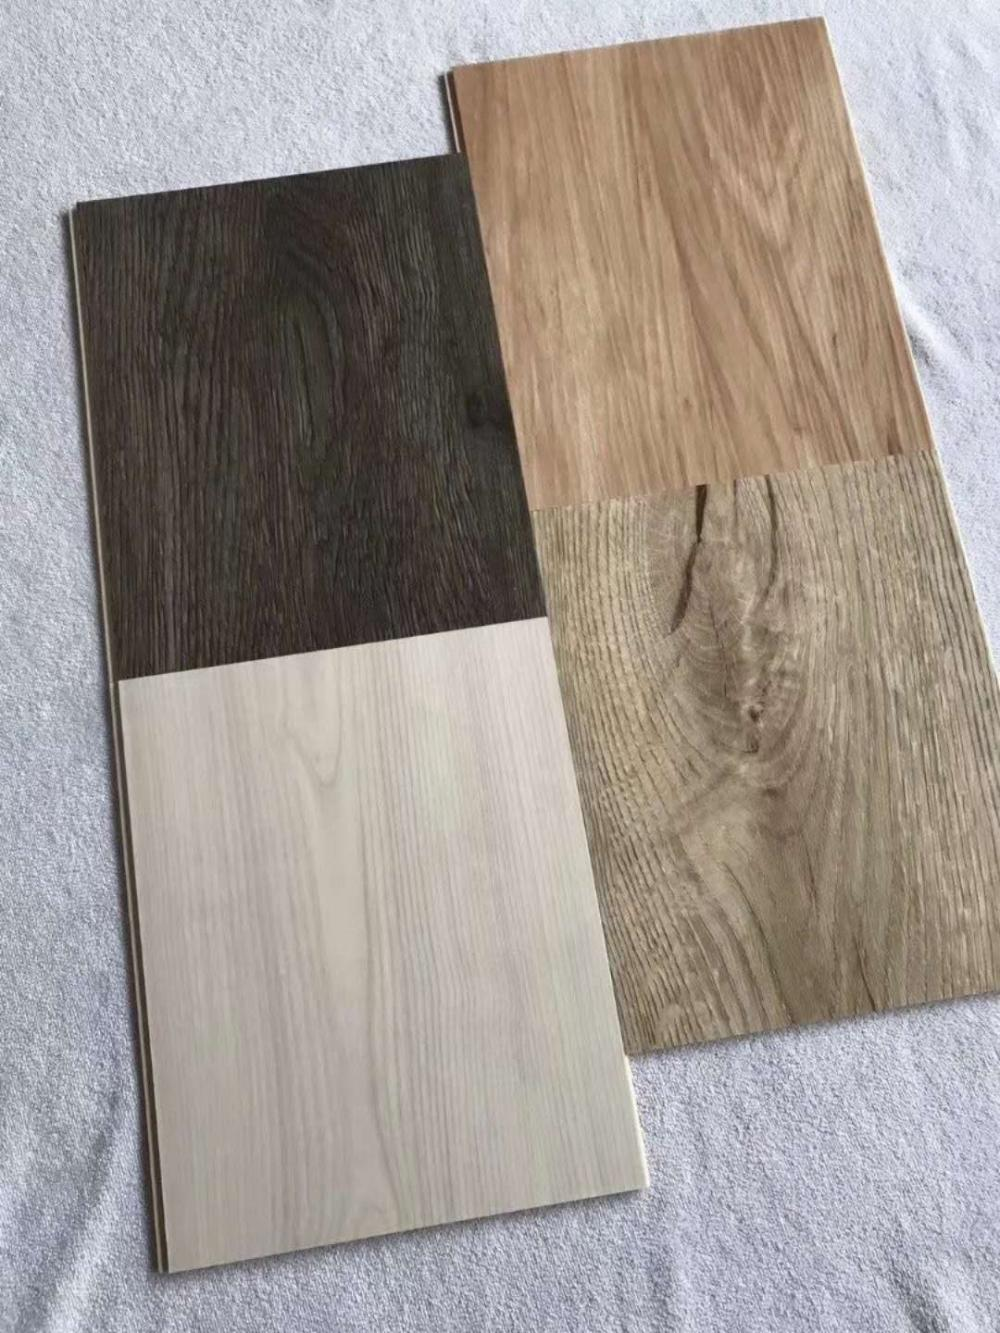 Easy To Install Spc Flooring For Home China Manufacturer